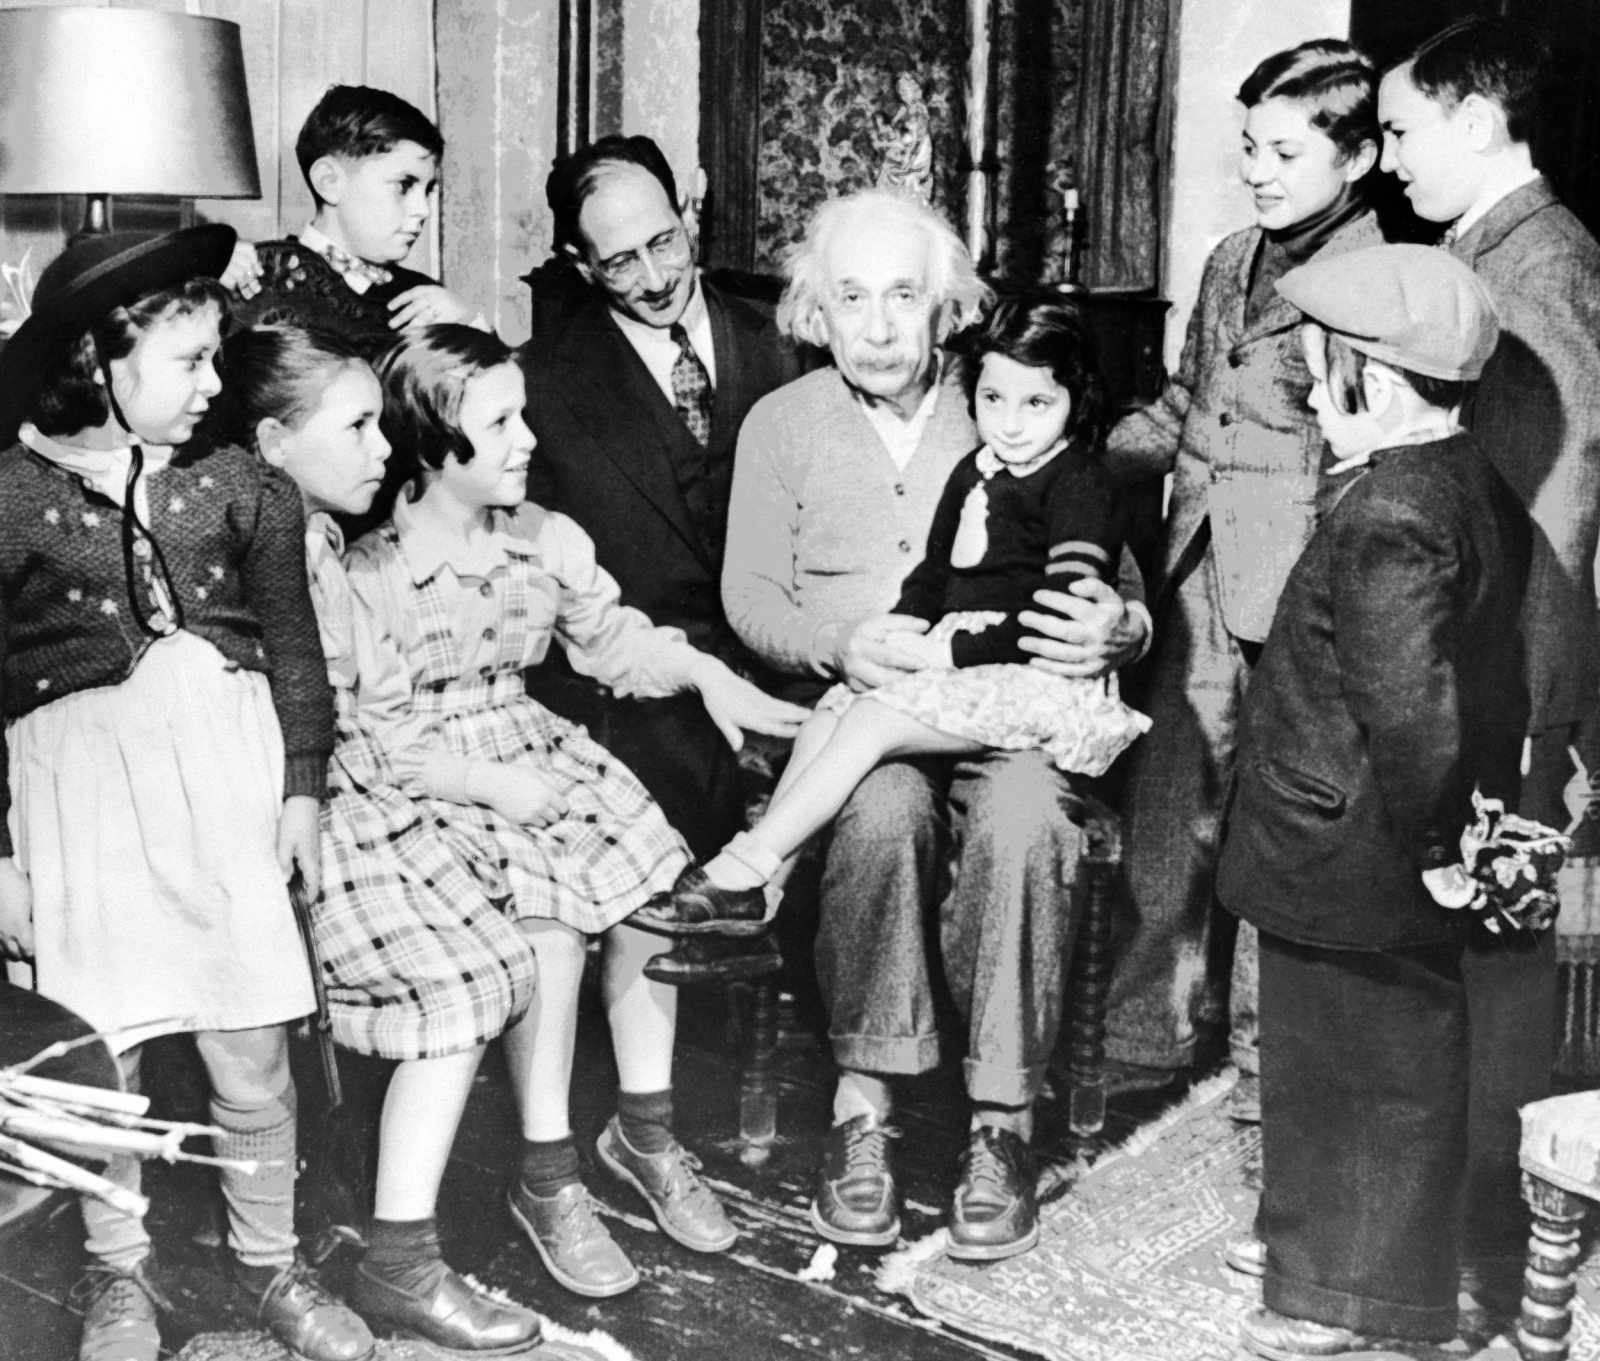 evaluating the impact of albert einstein on the society Start studying ch1 the rise of industrial society in the west learn vocabulary, terms albert einstein which ideology had the great impact and influence on western society-- liberalism or nationalism.